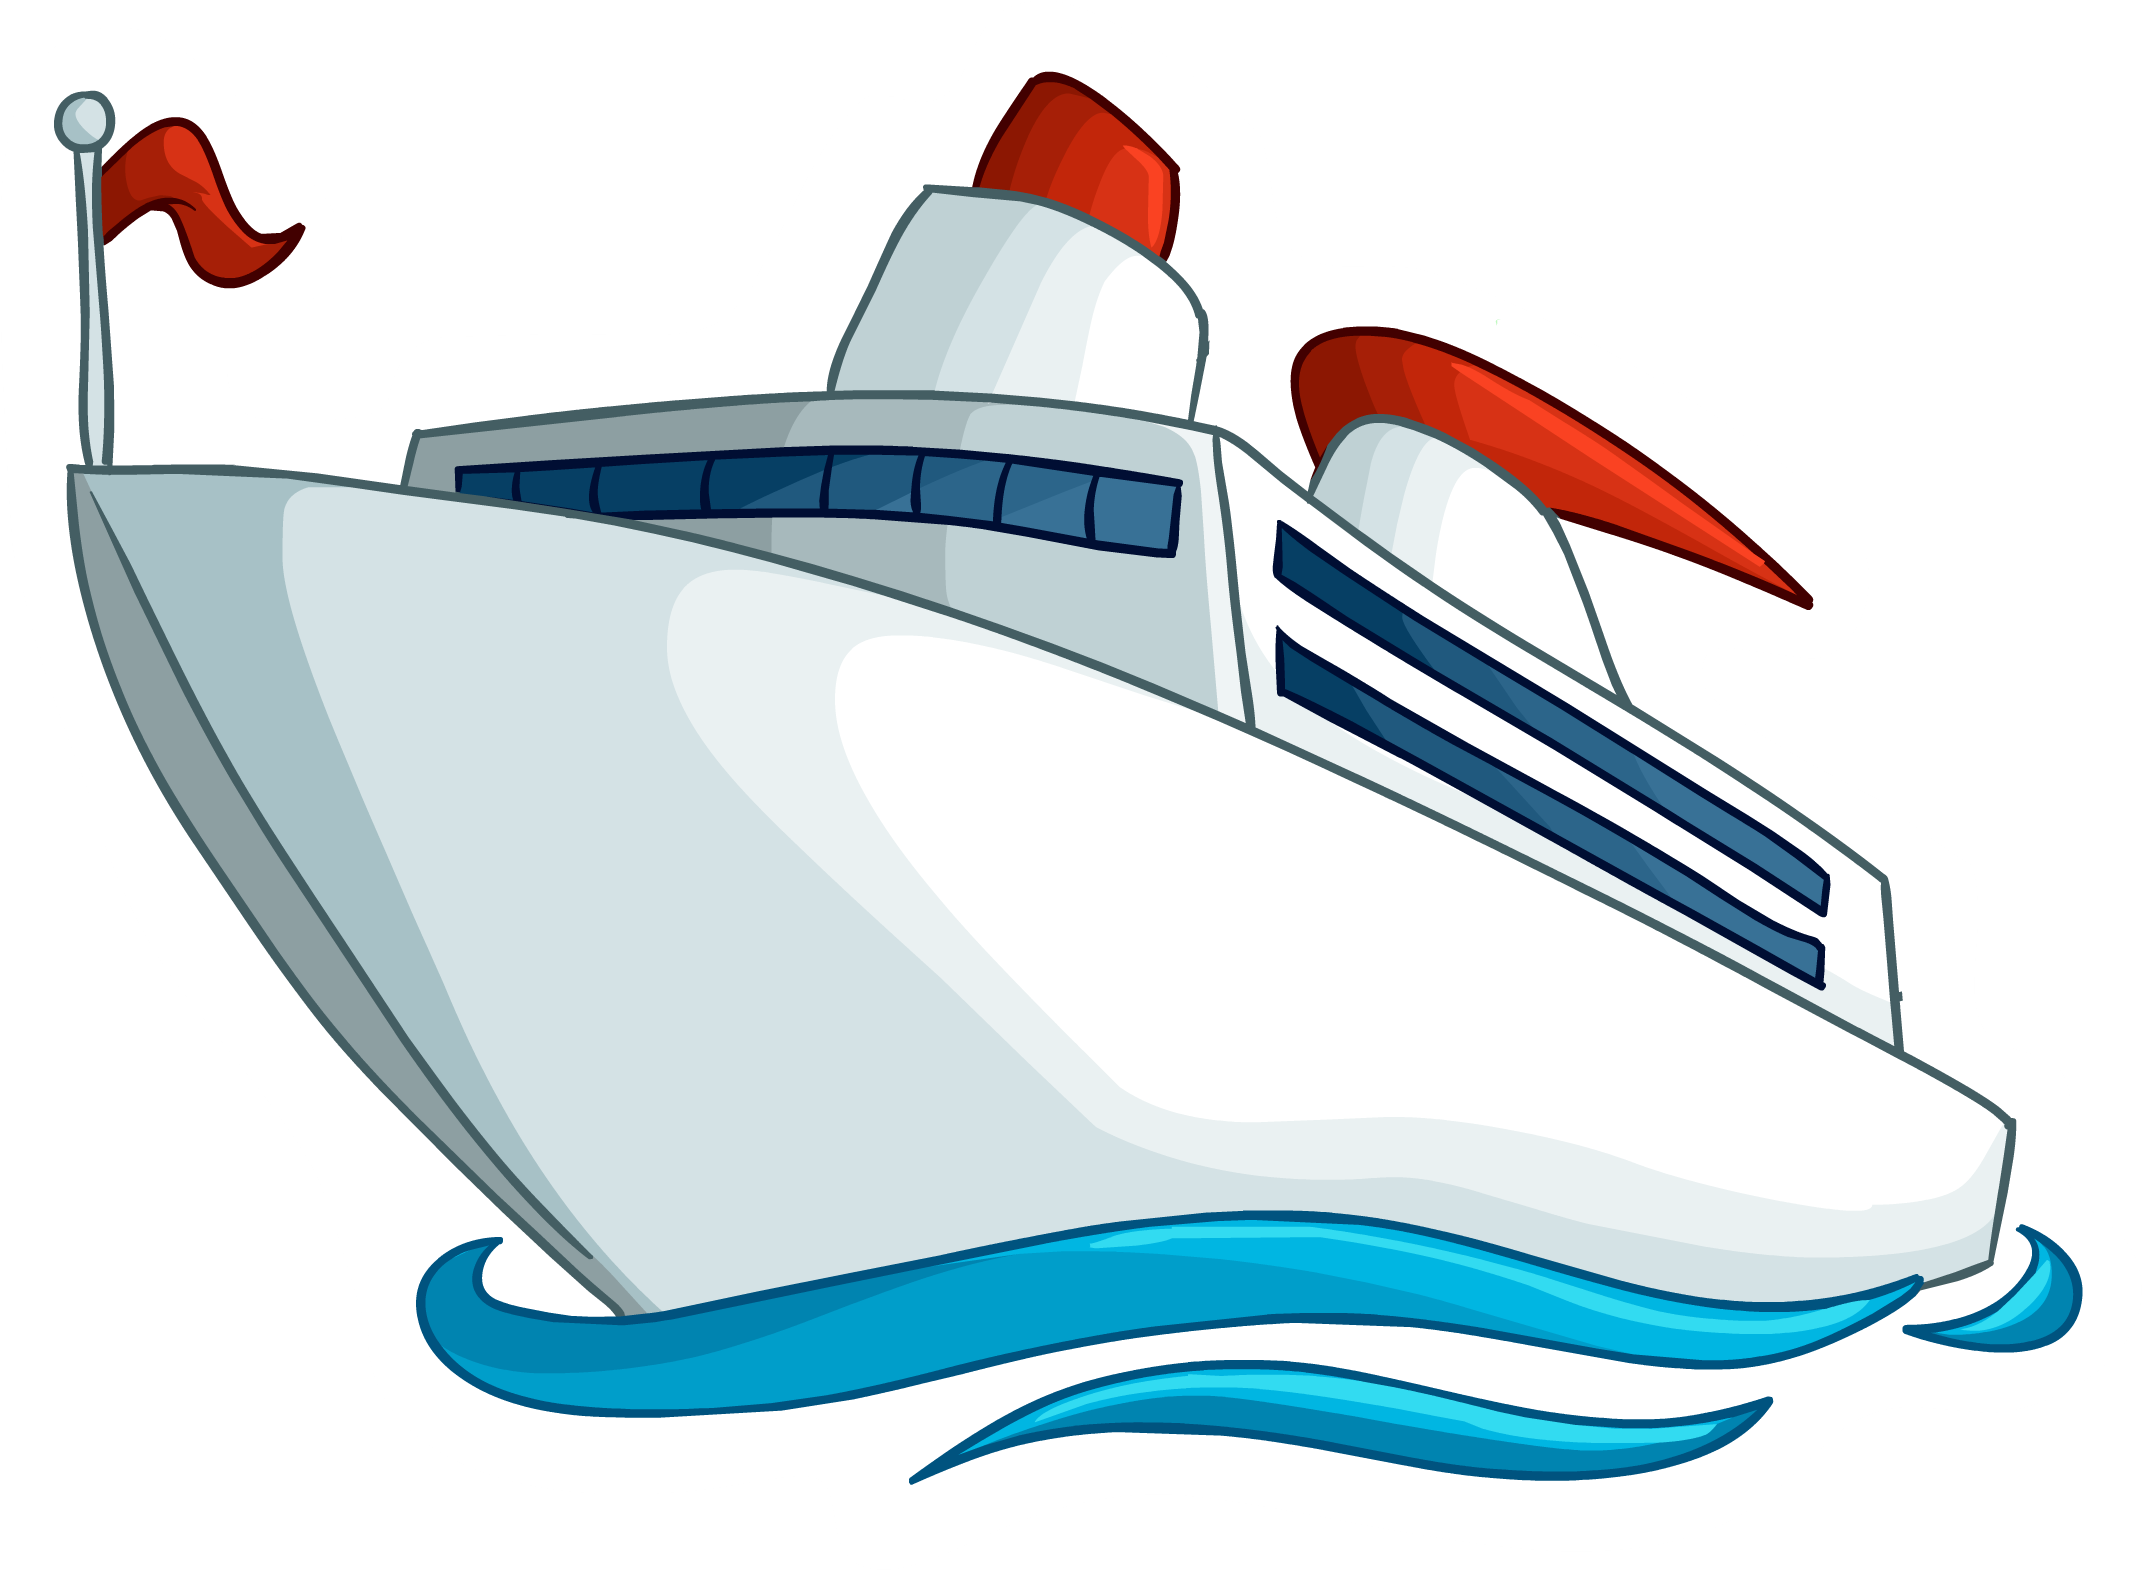 Image cruise pin png. Iceberg clipart immigrant ship